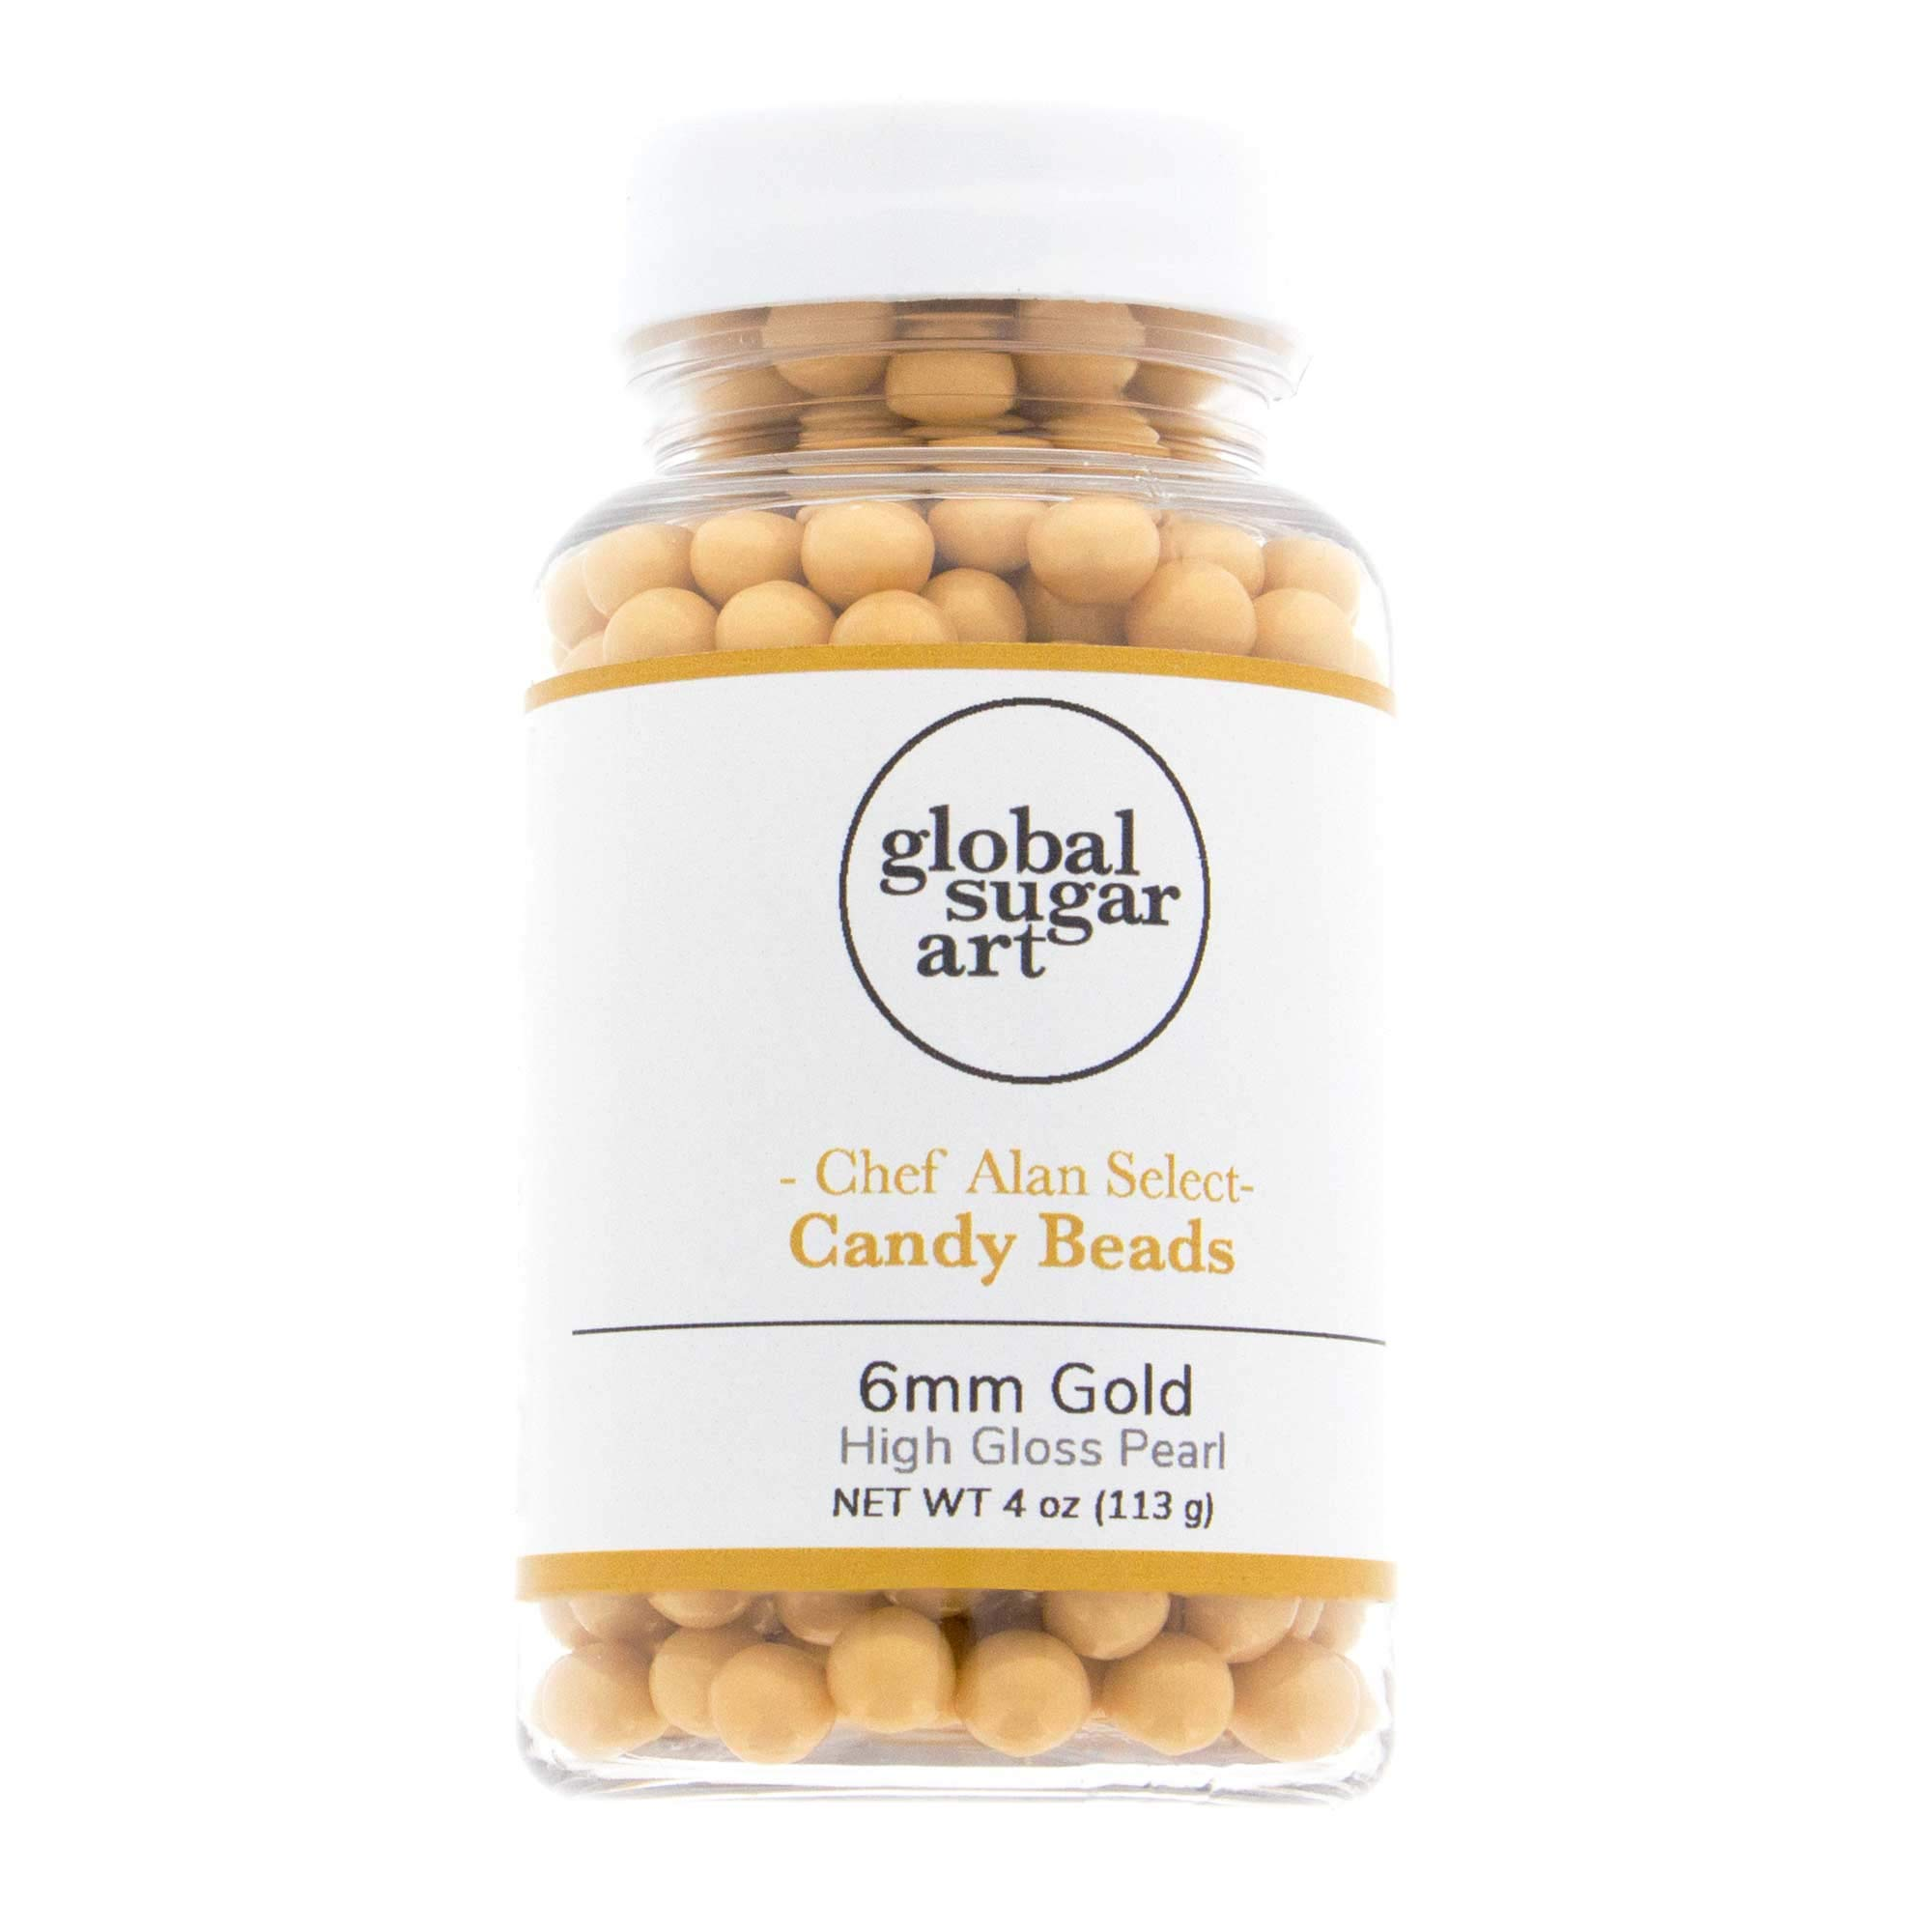 Gold High Gloss Pearl Candy Beads 6mm, 4 Ounces by Chef Alan Tetreault